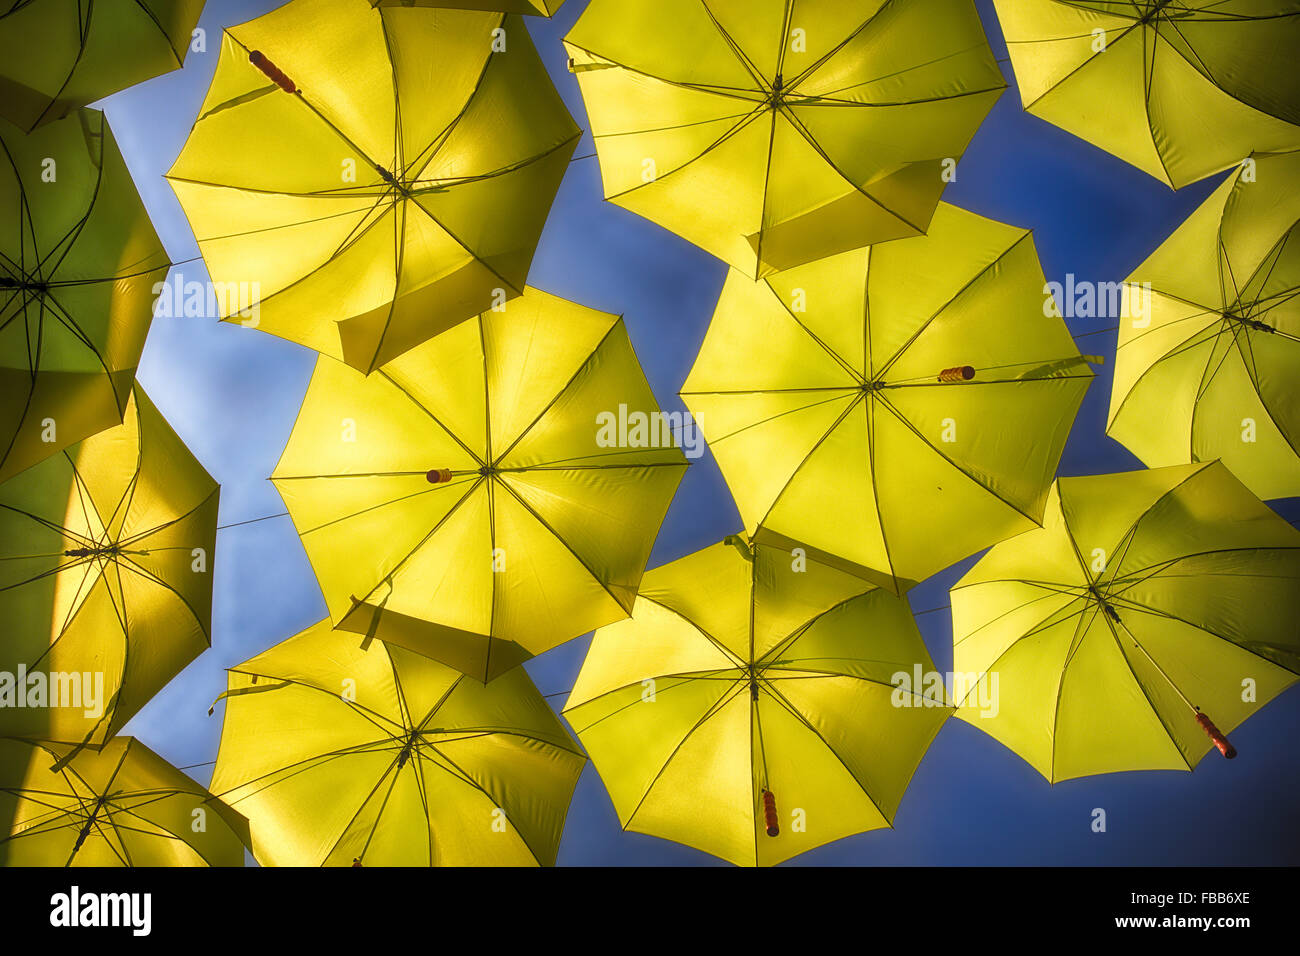 Low Angle View of Open Yellow Umbrellas Suspended in the Air - Stock Image